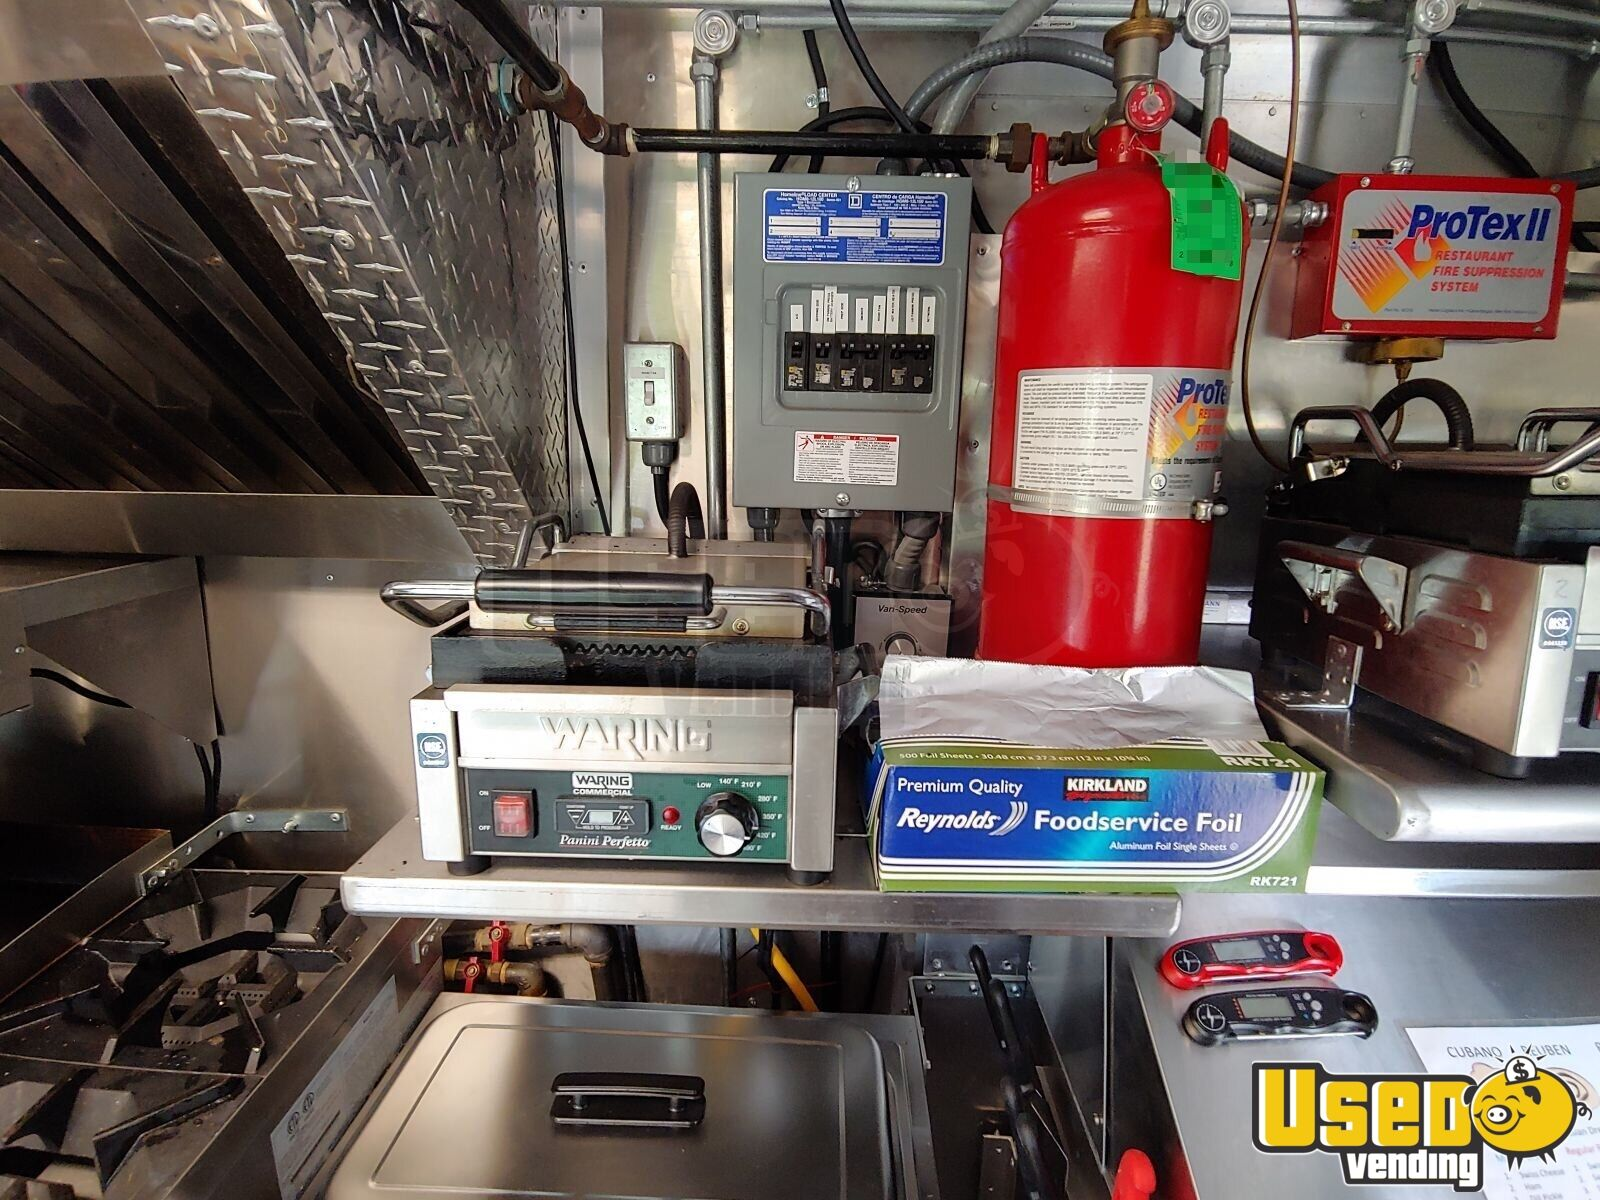 2002 Workhorse P30 Barbecue Food Truck Fryer Virginia Diesel Engine for Sale - 20